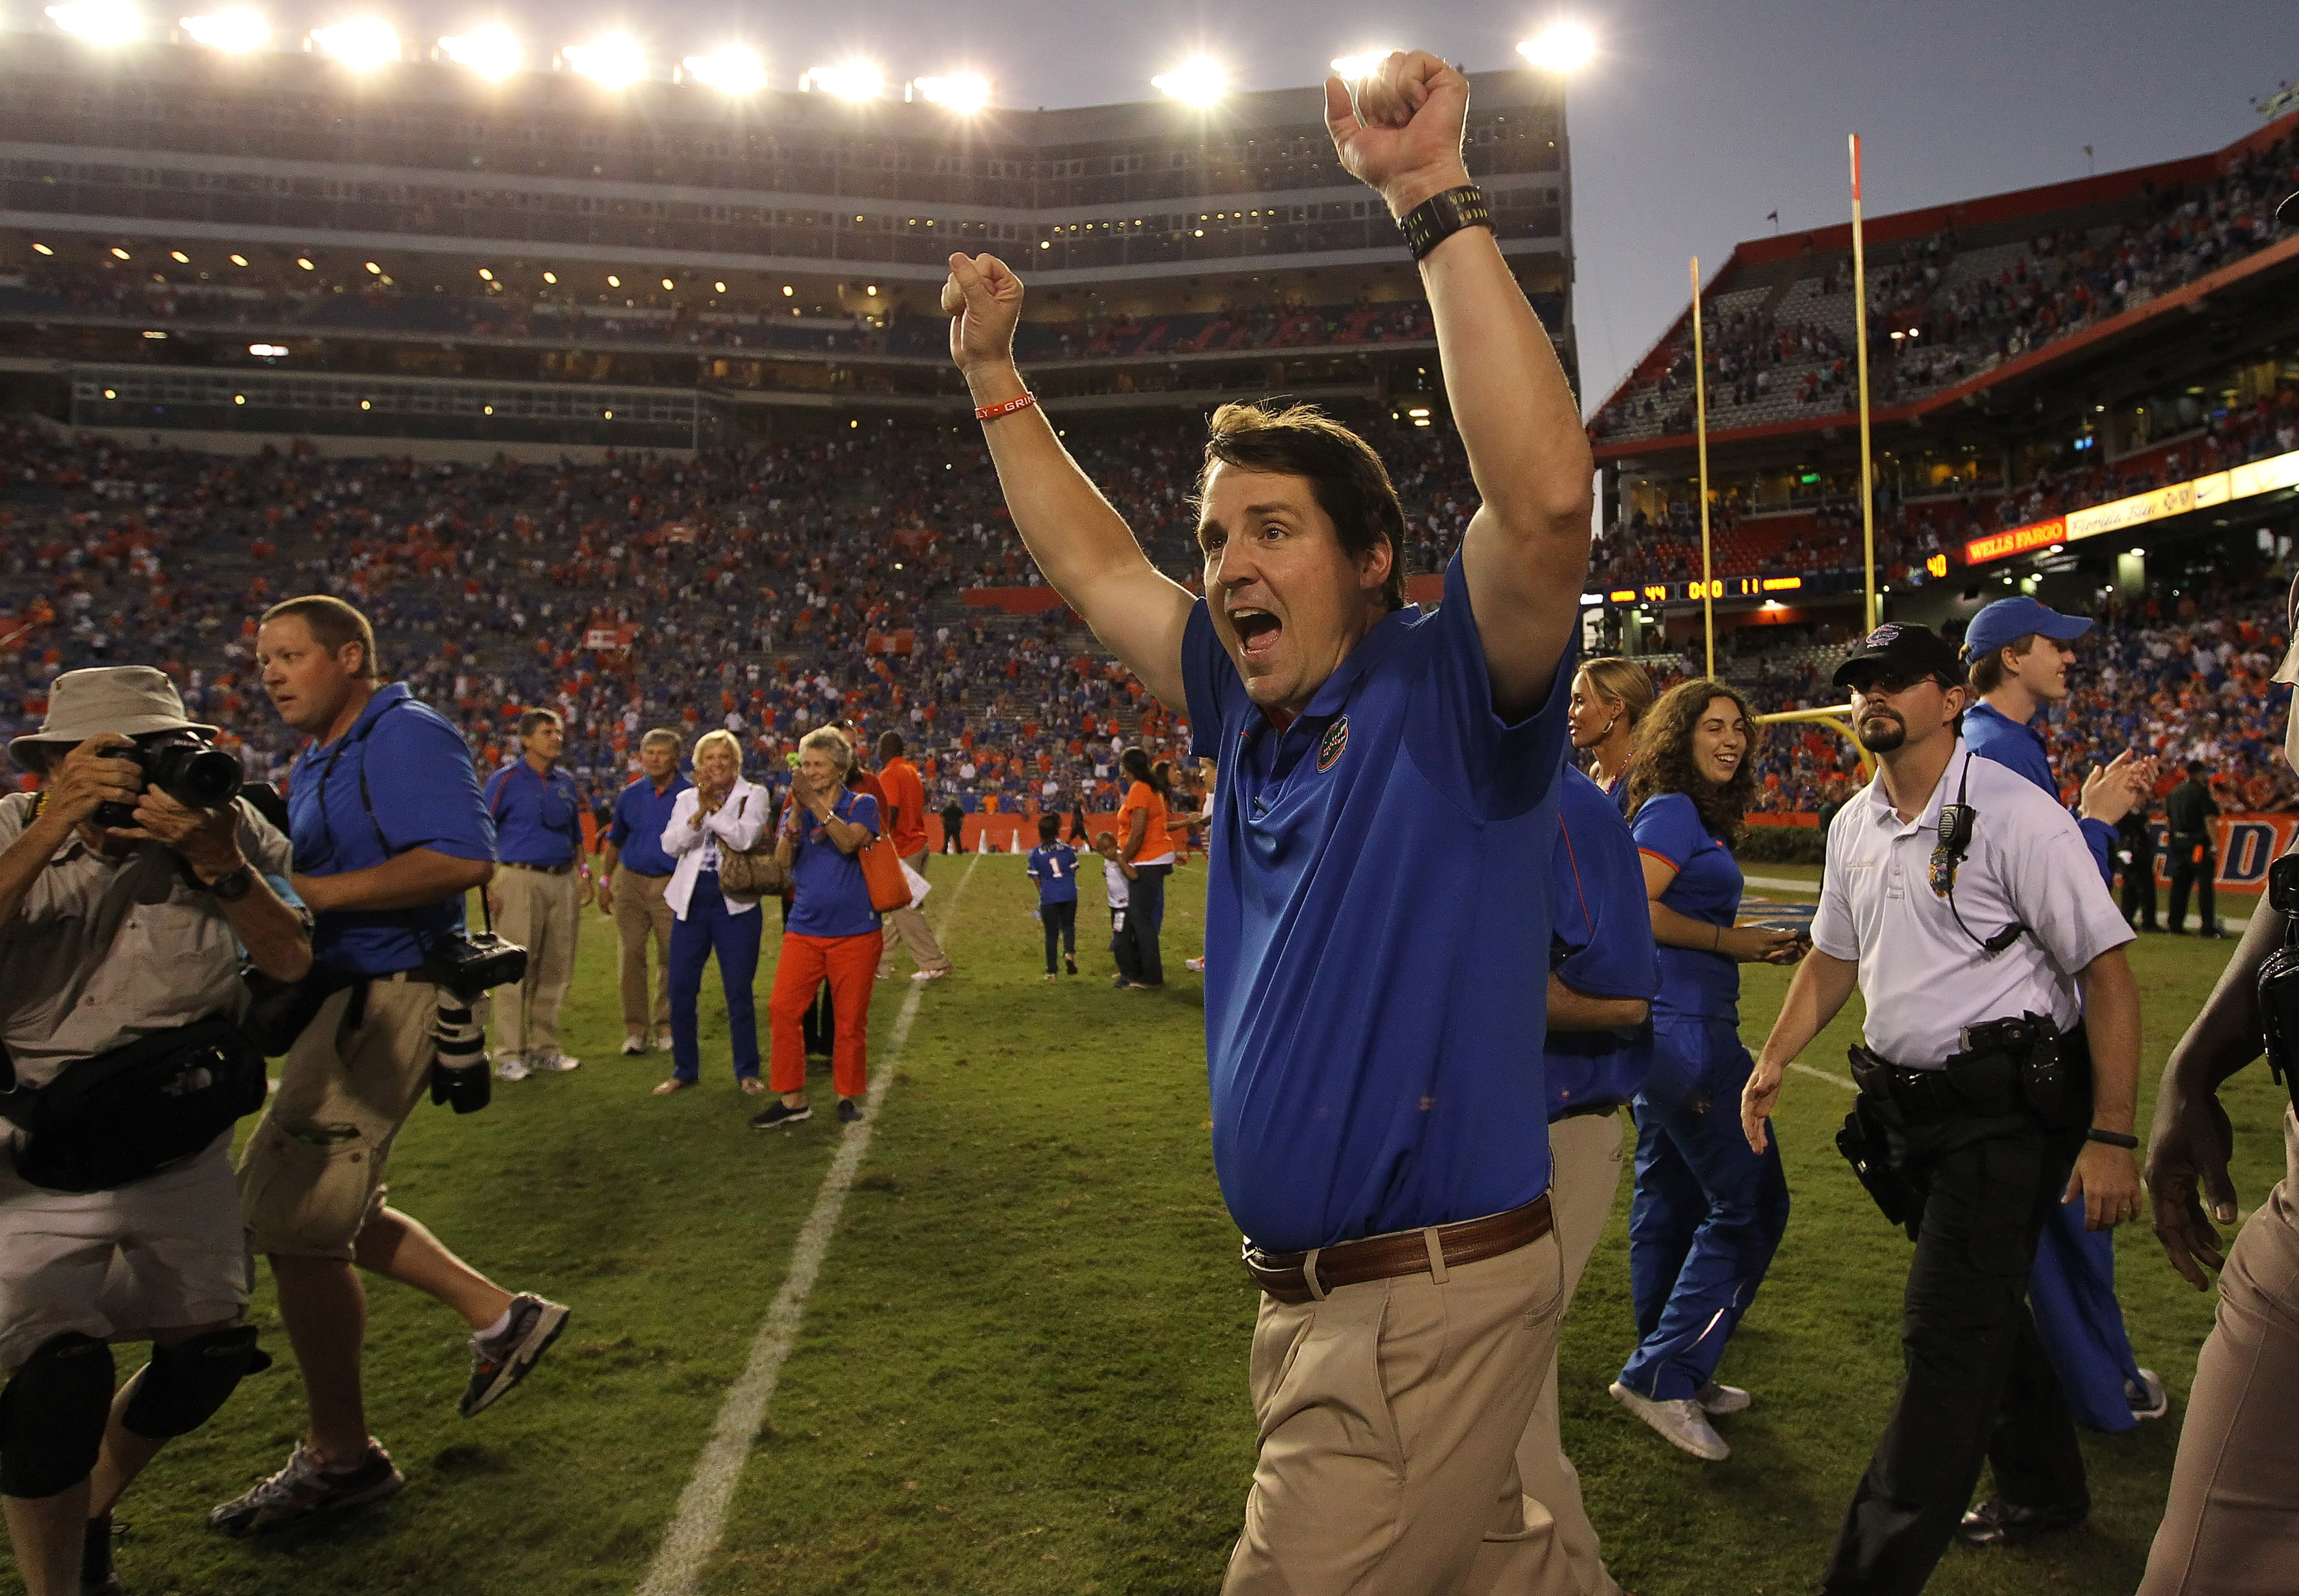 The way Florida hired Will Muschamp was picture-perfect. Here's a guide to doing your coaching hire as well as they did.